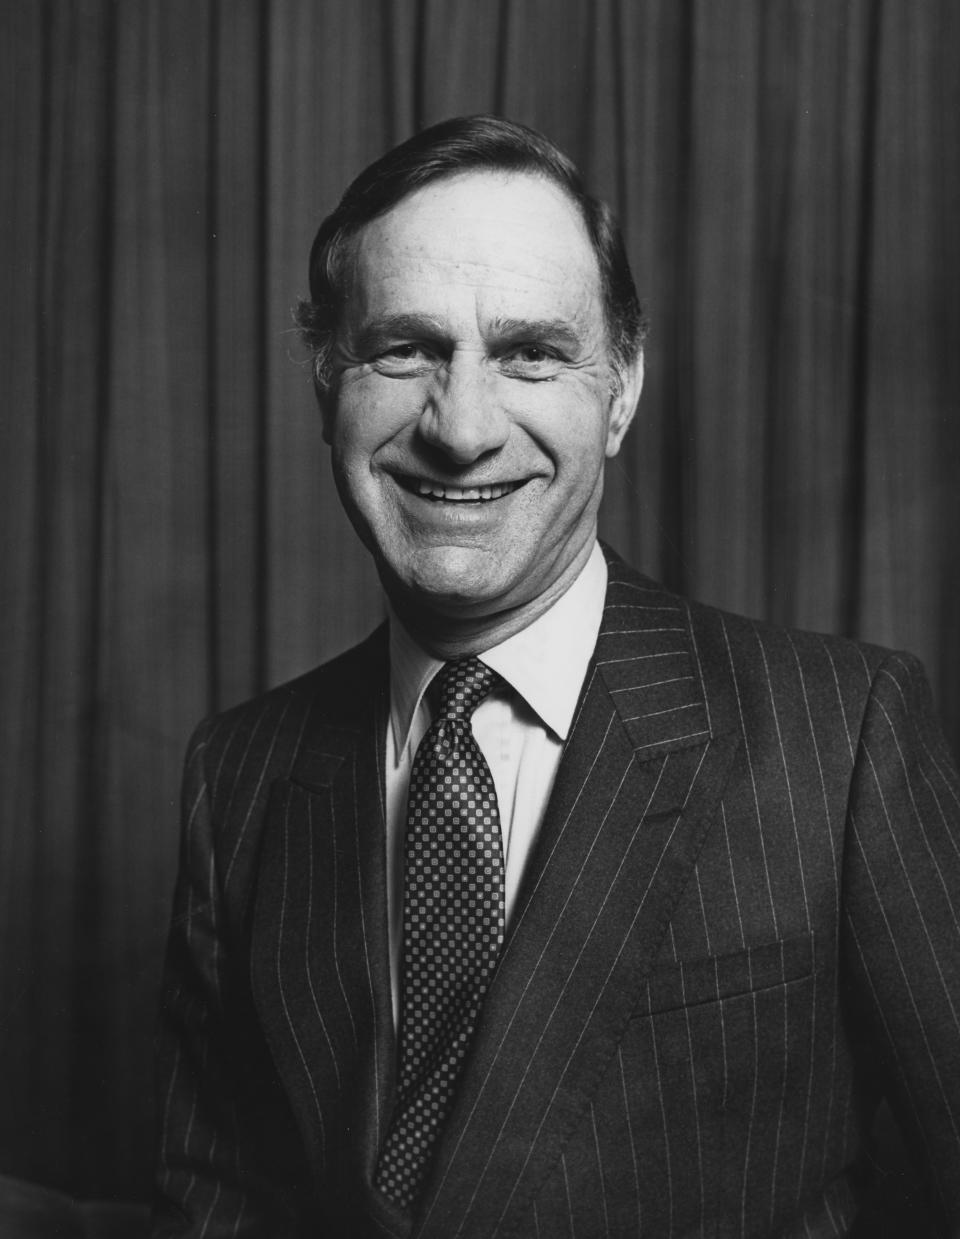 Promotional portrait of actor Geoffrey Palmer for the television show 'The Last Song', January 1983. First Printed in Radio Times issue 3092, page 19, February 10th 1983. (Photo by Tim Roney/Radio Times/Getty Images)